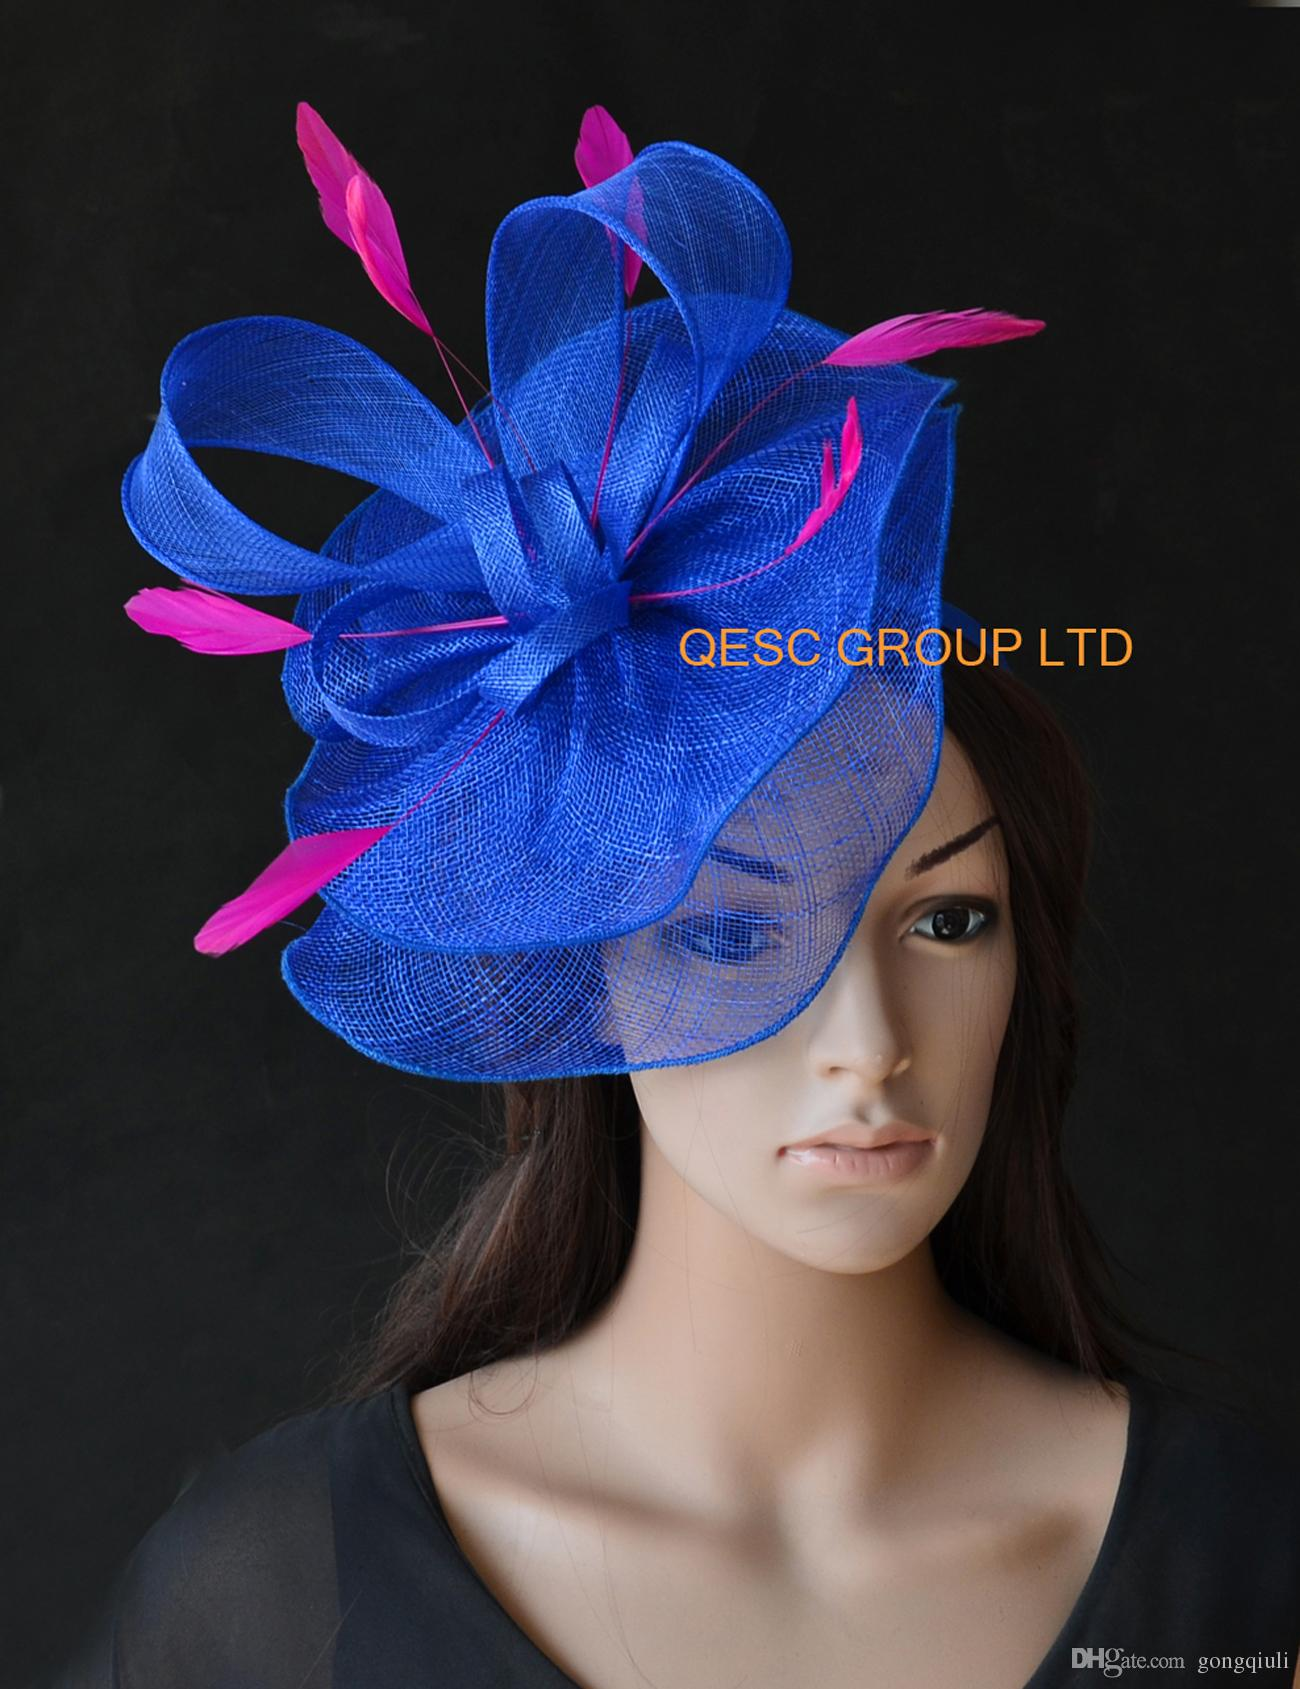 Royal Blue Sinamay Fascinator Hat Feather Fascinator For Wedding Kentucky  Derby Ascot Races. Small Hats For Weddings Small Wedding Hats From  Gongqiuli 70c7e8827c0